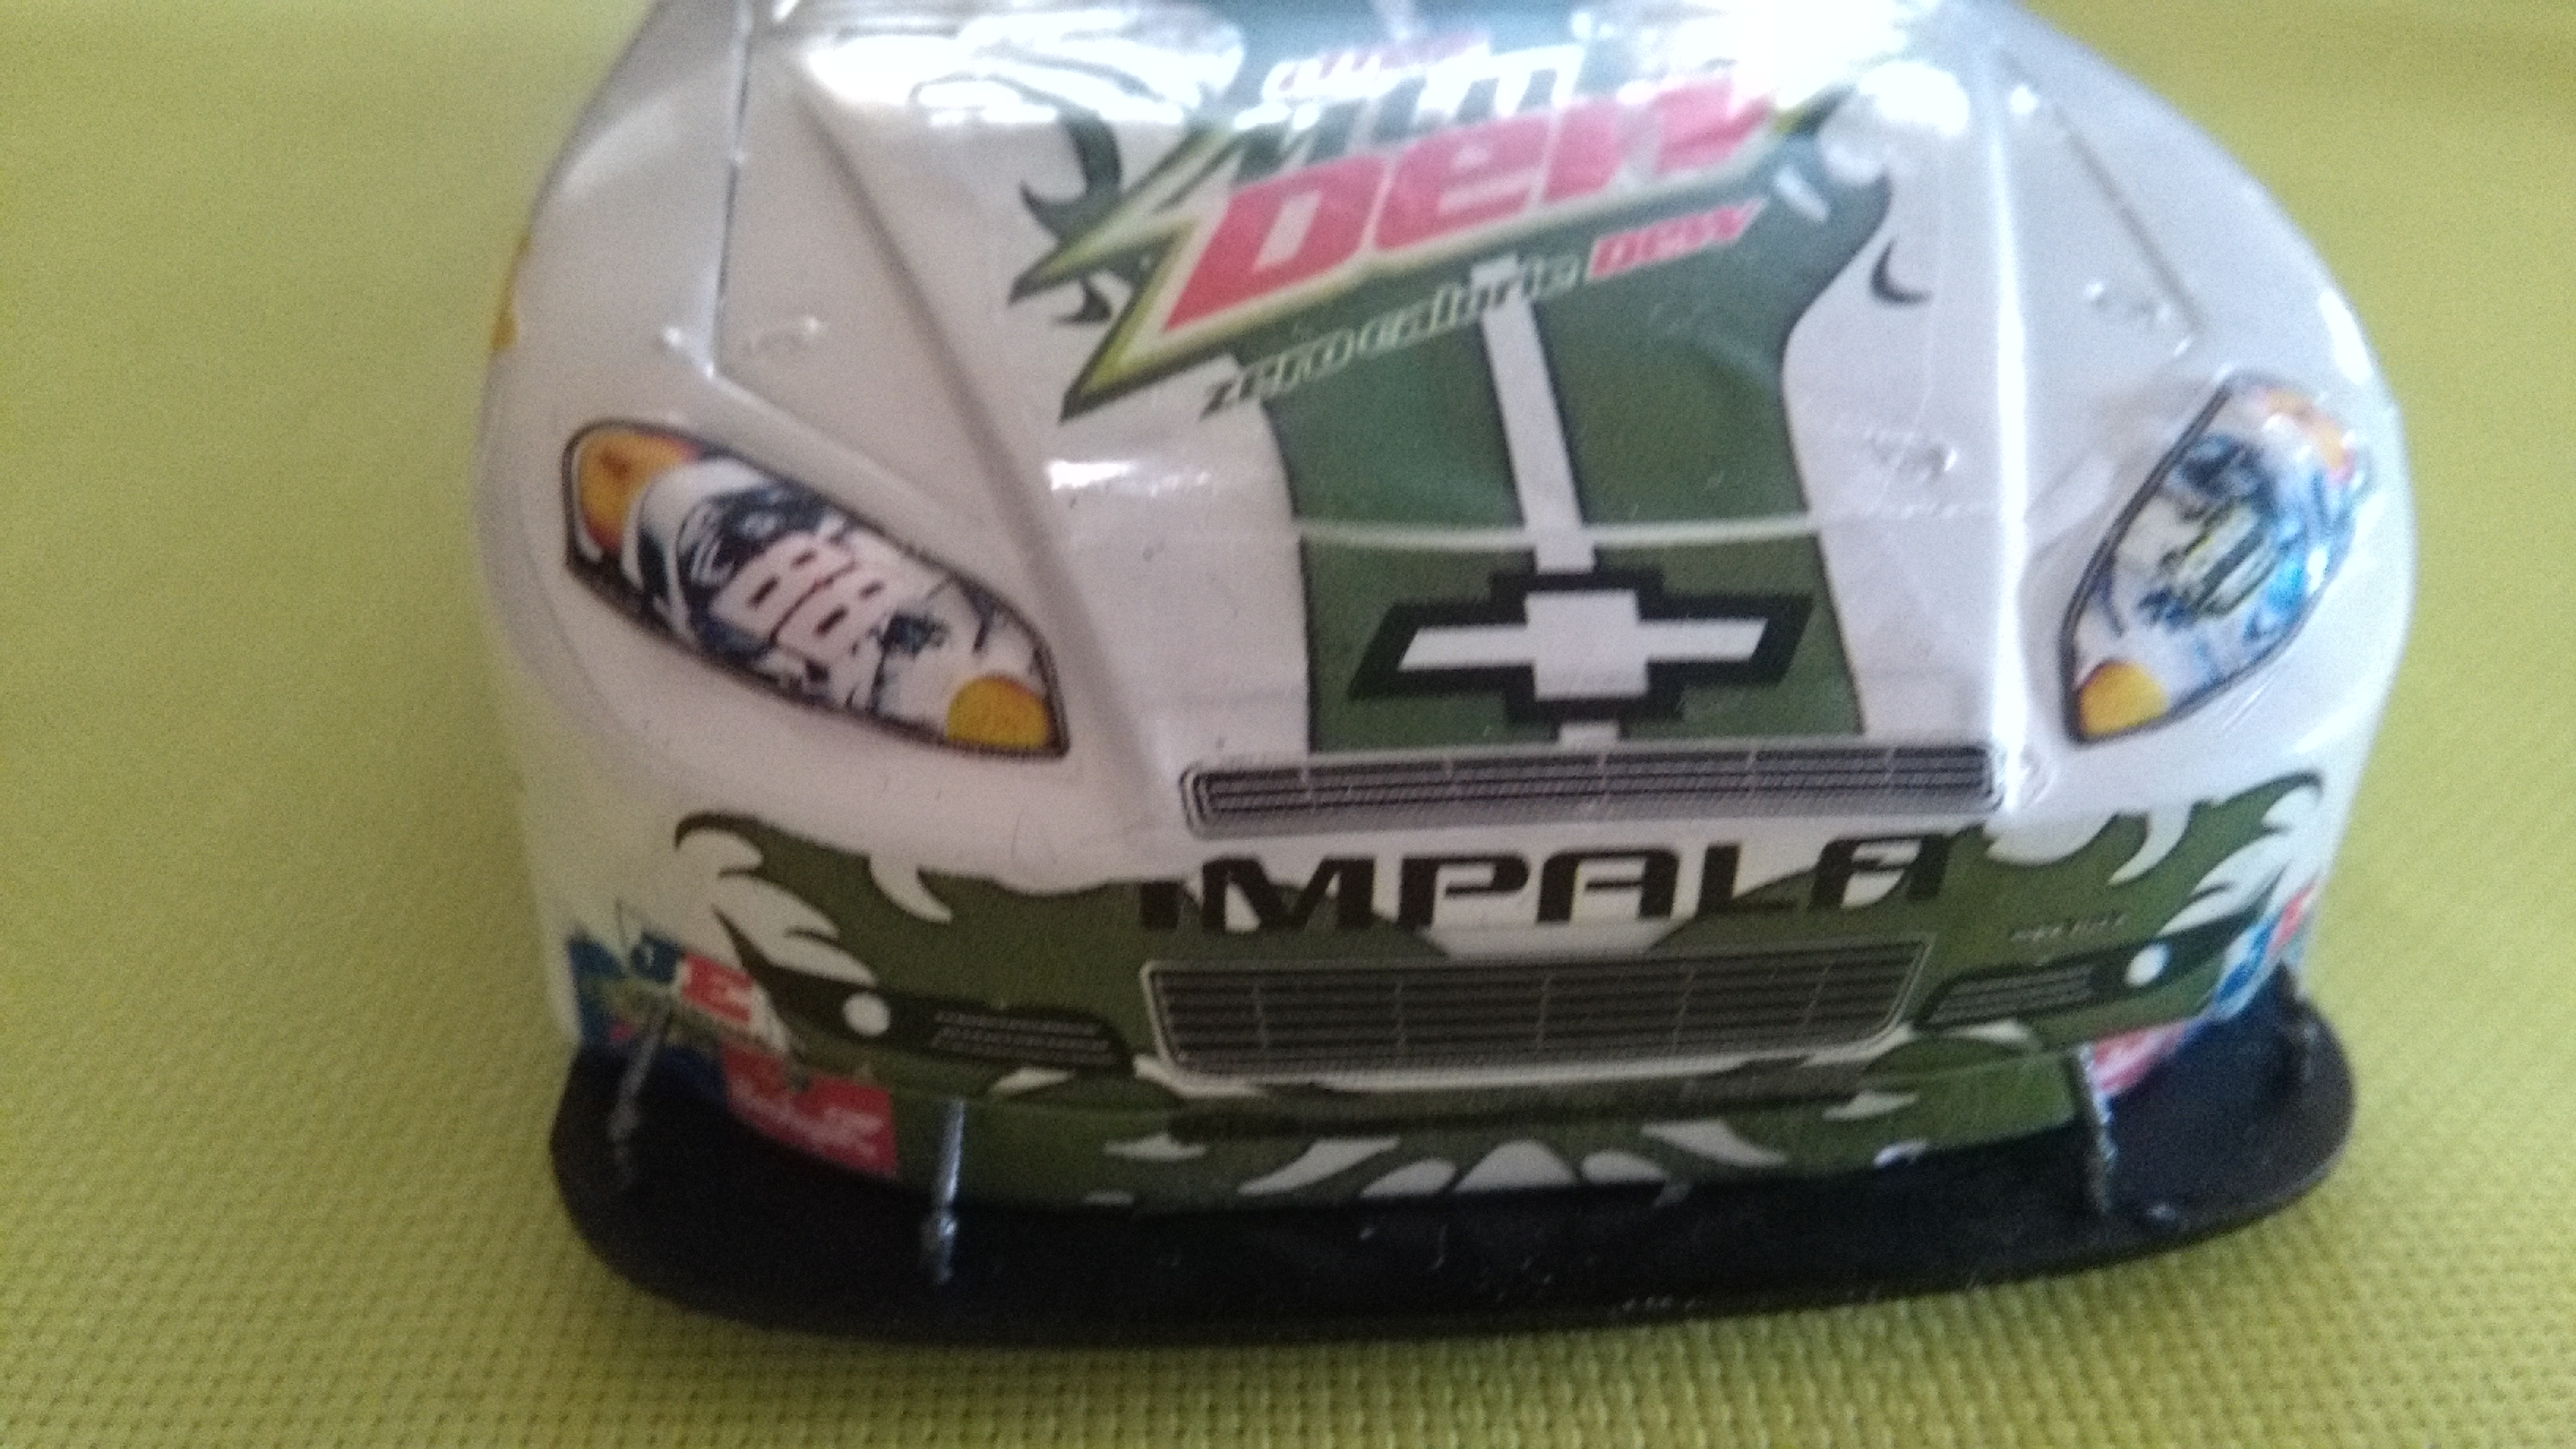 Chevy Impala 2010 #88 Earnhardt jr Mountain dew diet 629405IMG20160320150423